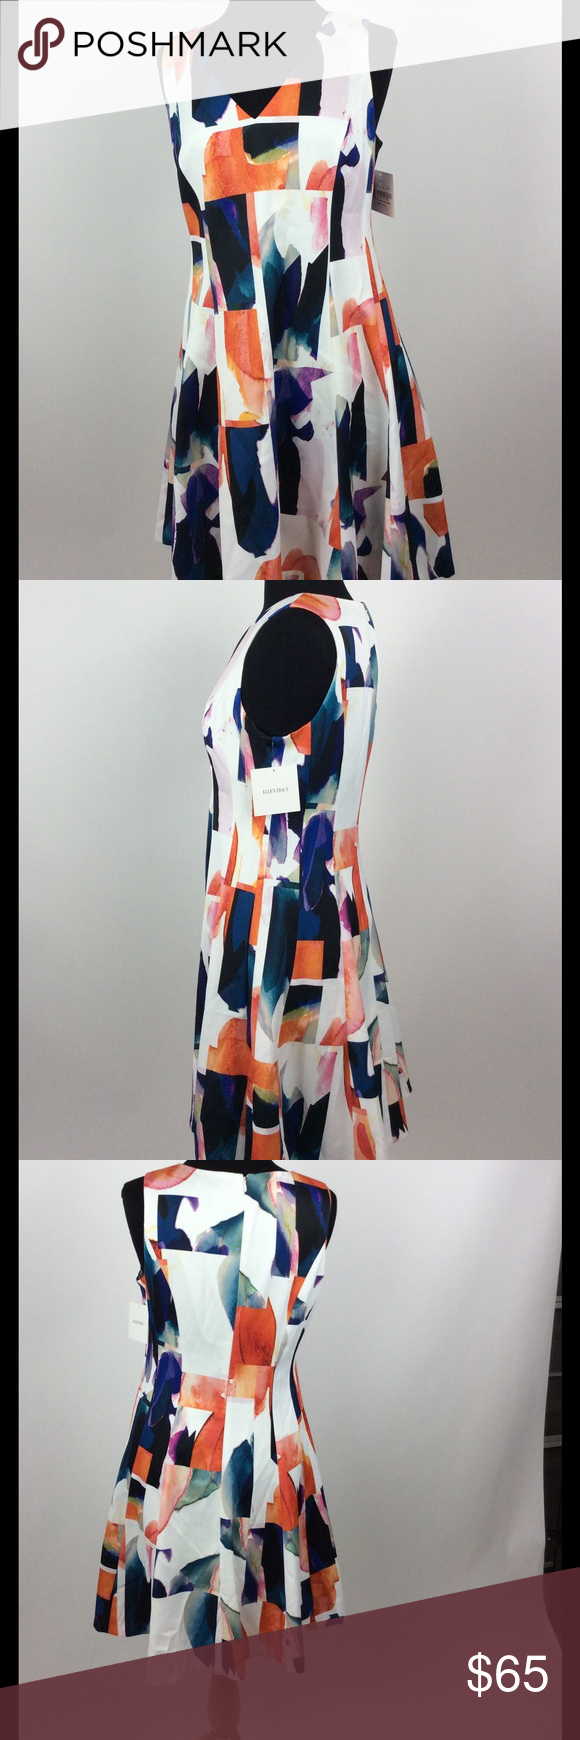 Ellen tracy nwt see size chart for more measurements dresses mini also minis and rh pinterest